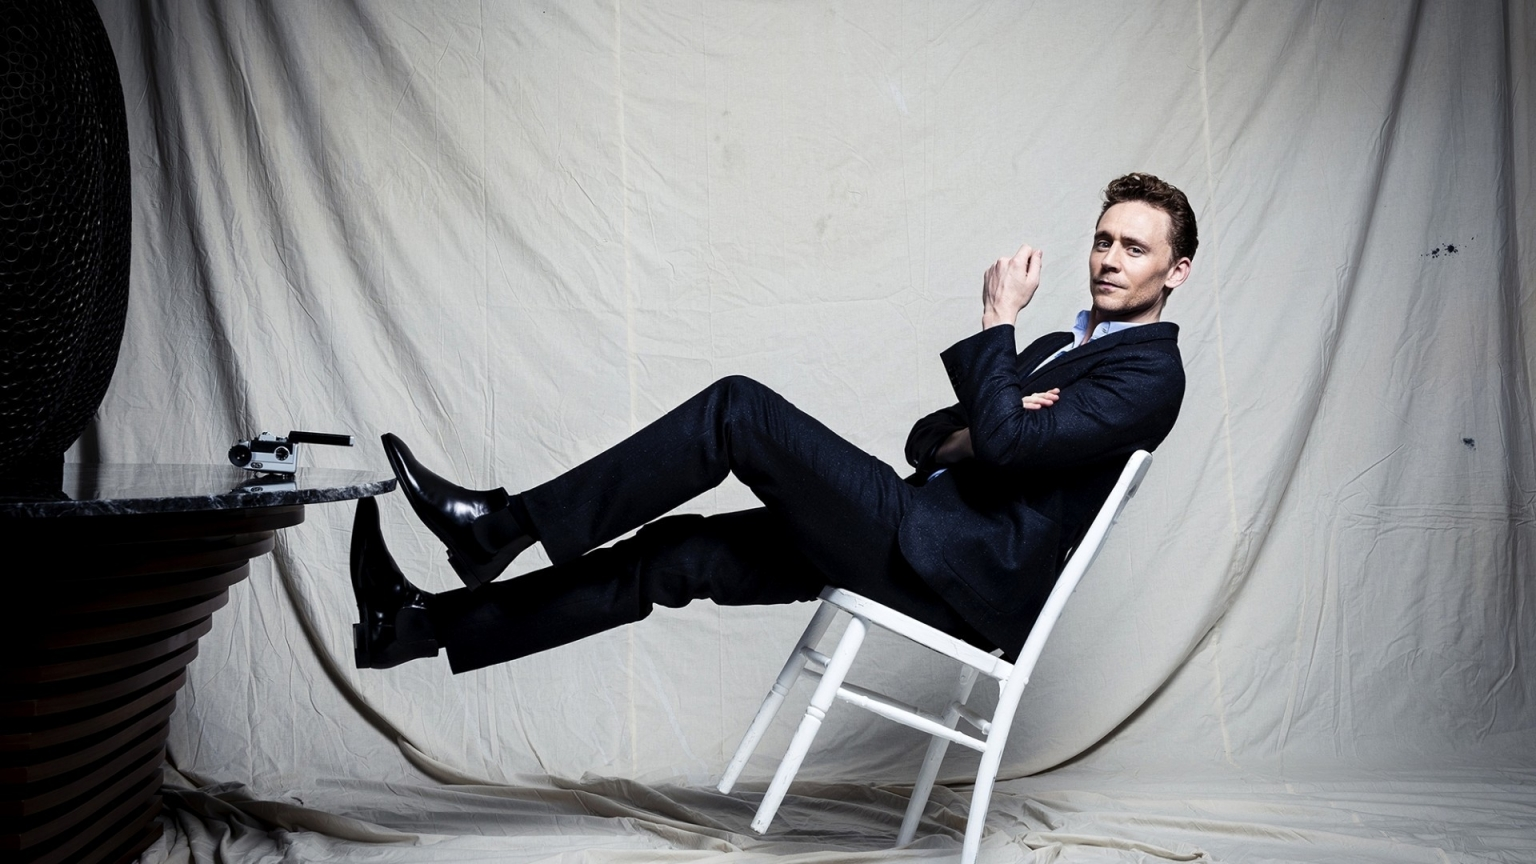 Tom Hiddleston Photo Session for 1536 x 864 HDTV resolution